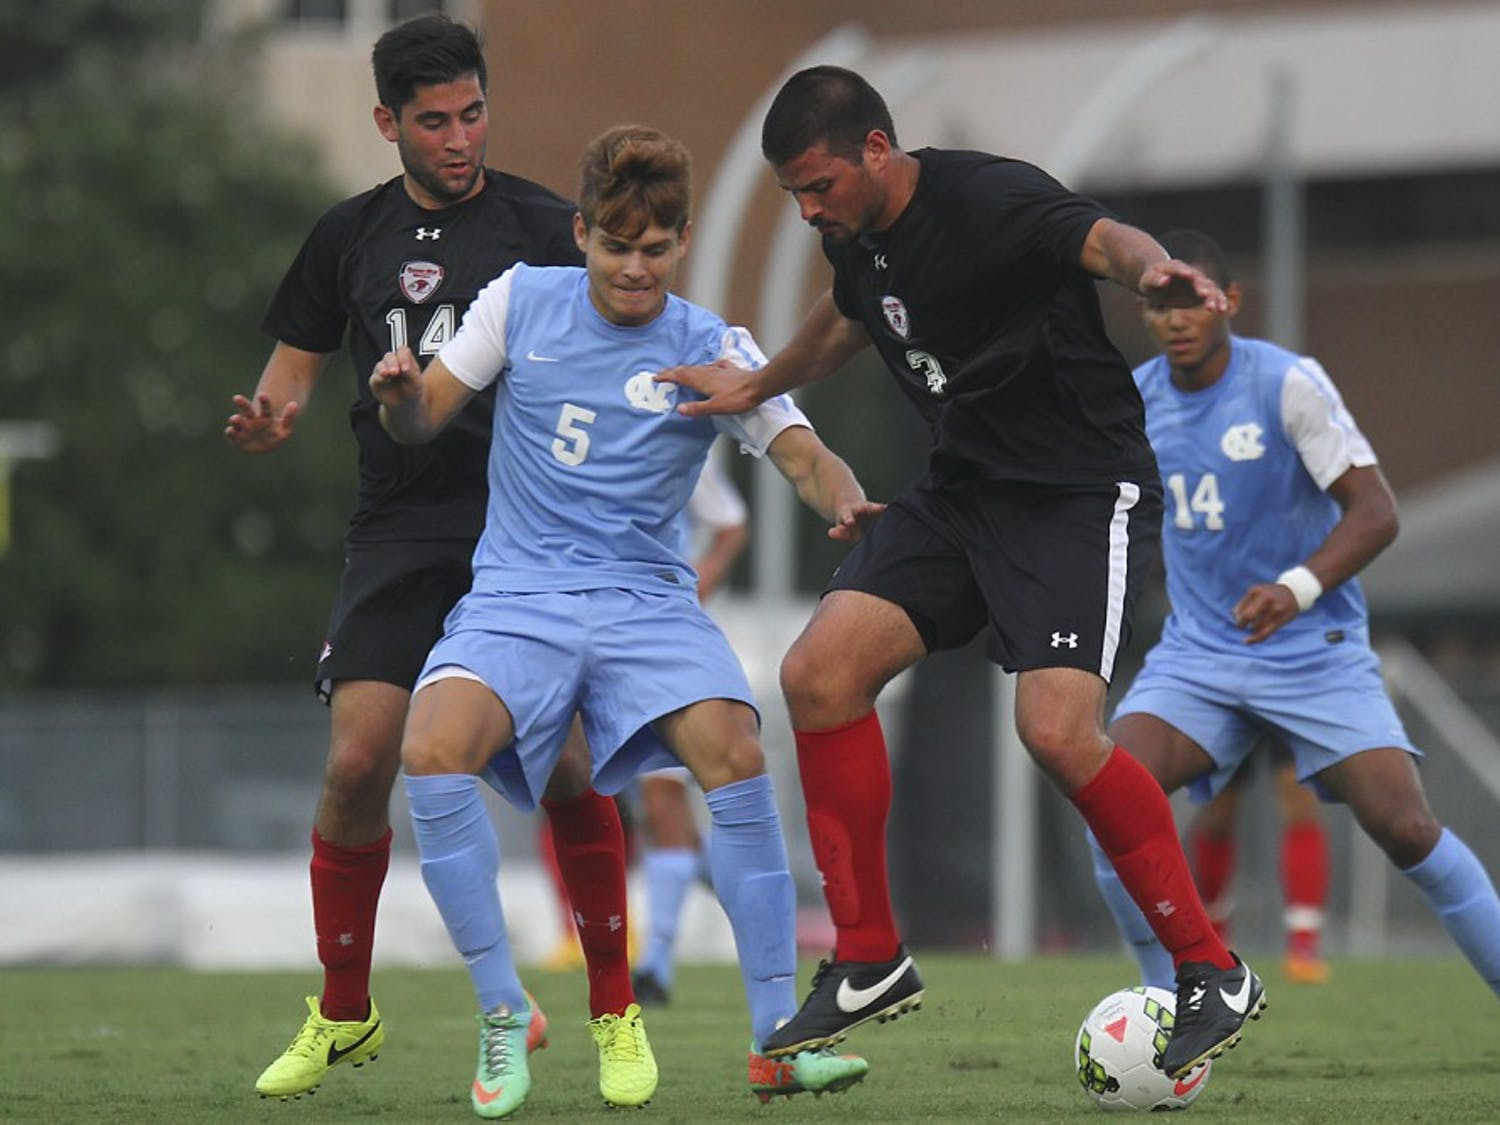 UNC forward, Alan Winn (5), makes a play on the ball against Gardner-Webb defender Matt Bogart (3) and mid-fielder Patrick Gurser (14).  Winn would finish the match with a goal early in the second half.  UNC defeated Gardner-Webb 7-0 Friday night at Fetzer field in an exhibition game.